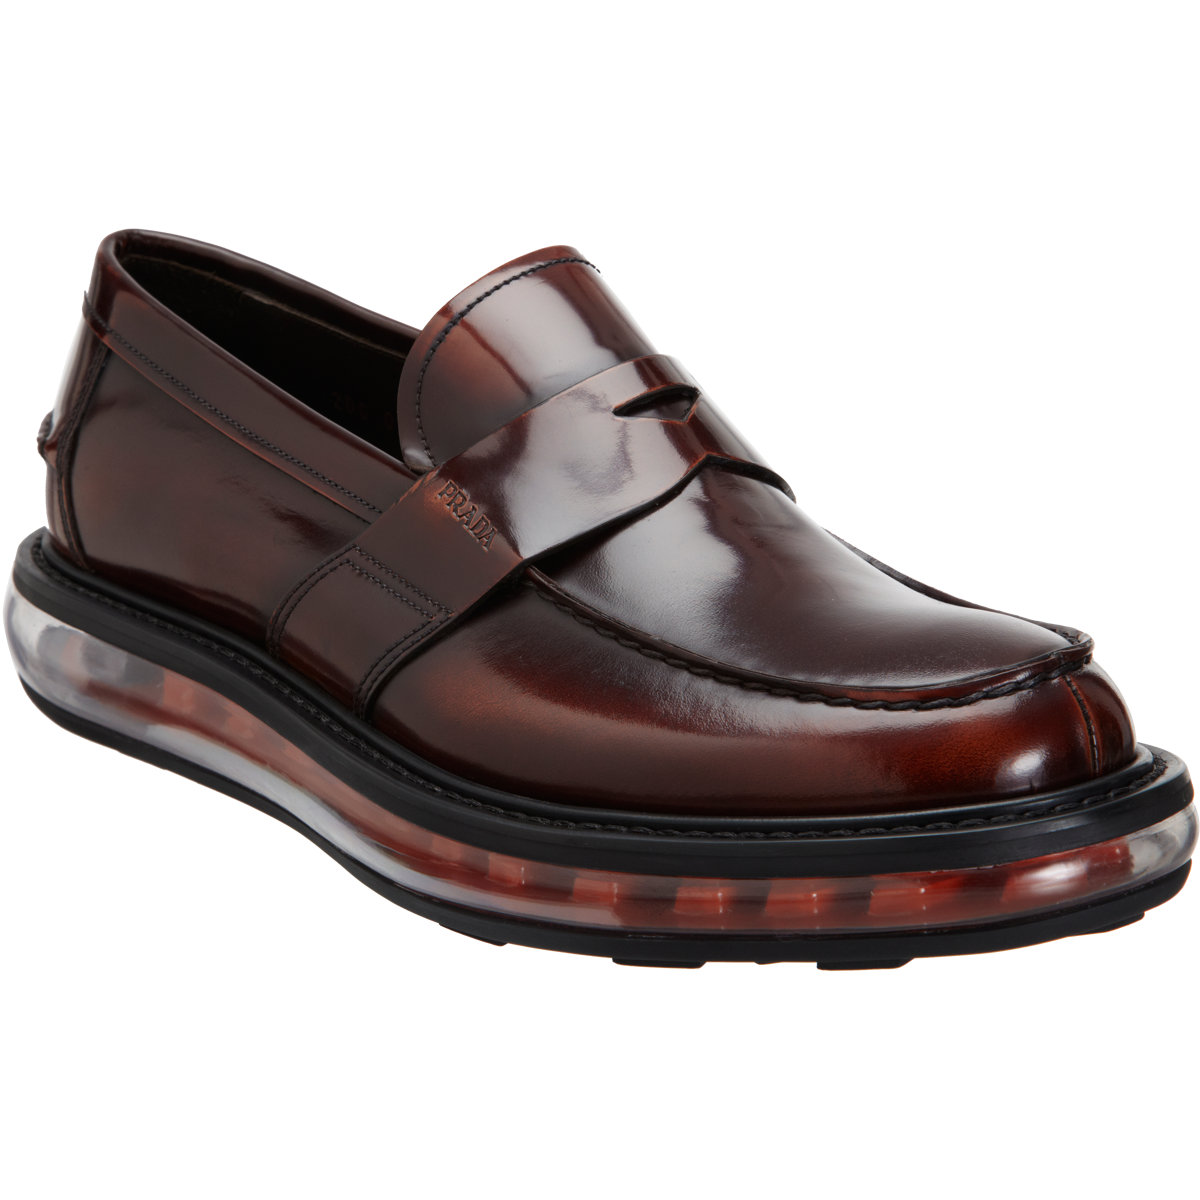 Prada Levitate Penny Loafer In Brown For Men (transparent) | Lyst